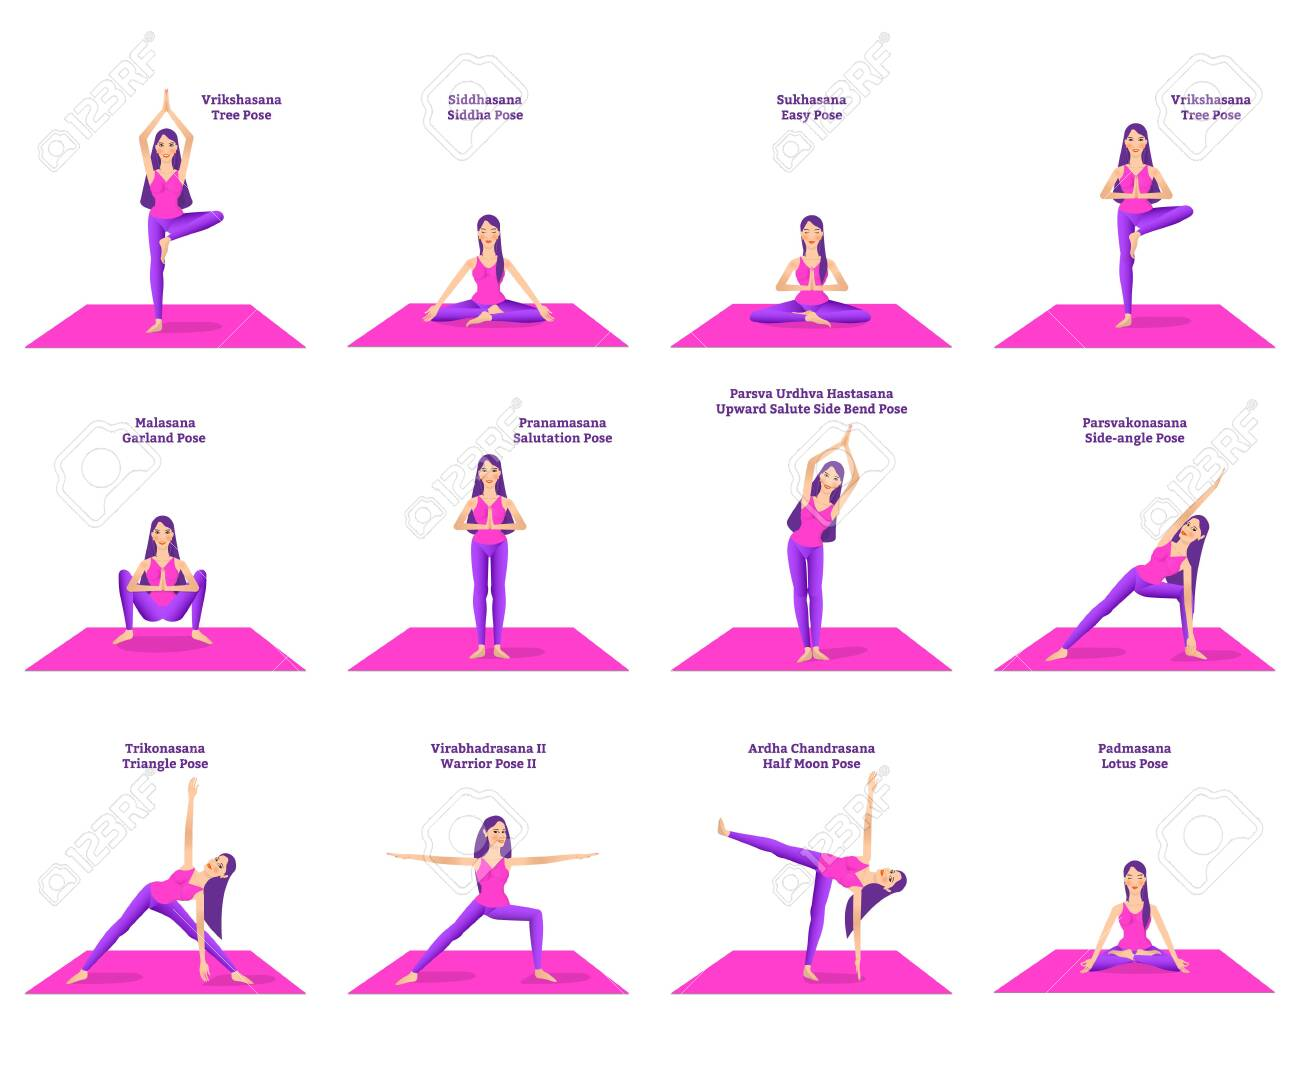 Set Of Woman Doing Different Yoga Poses Standing On Pink Mat Stock Photo Picture And Royalty Free Image Image 120519473